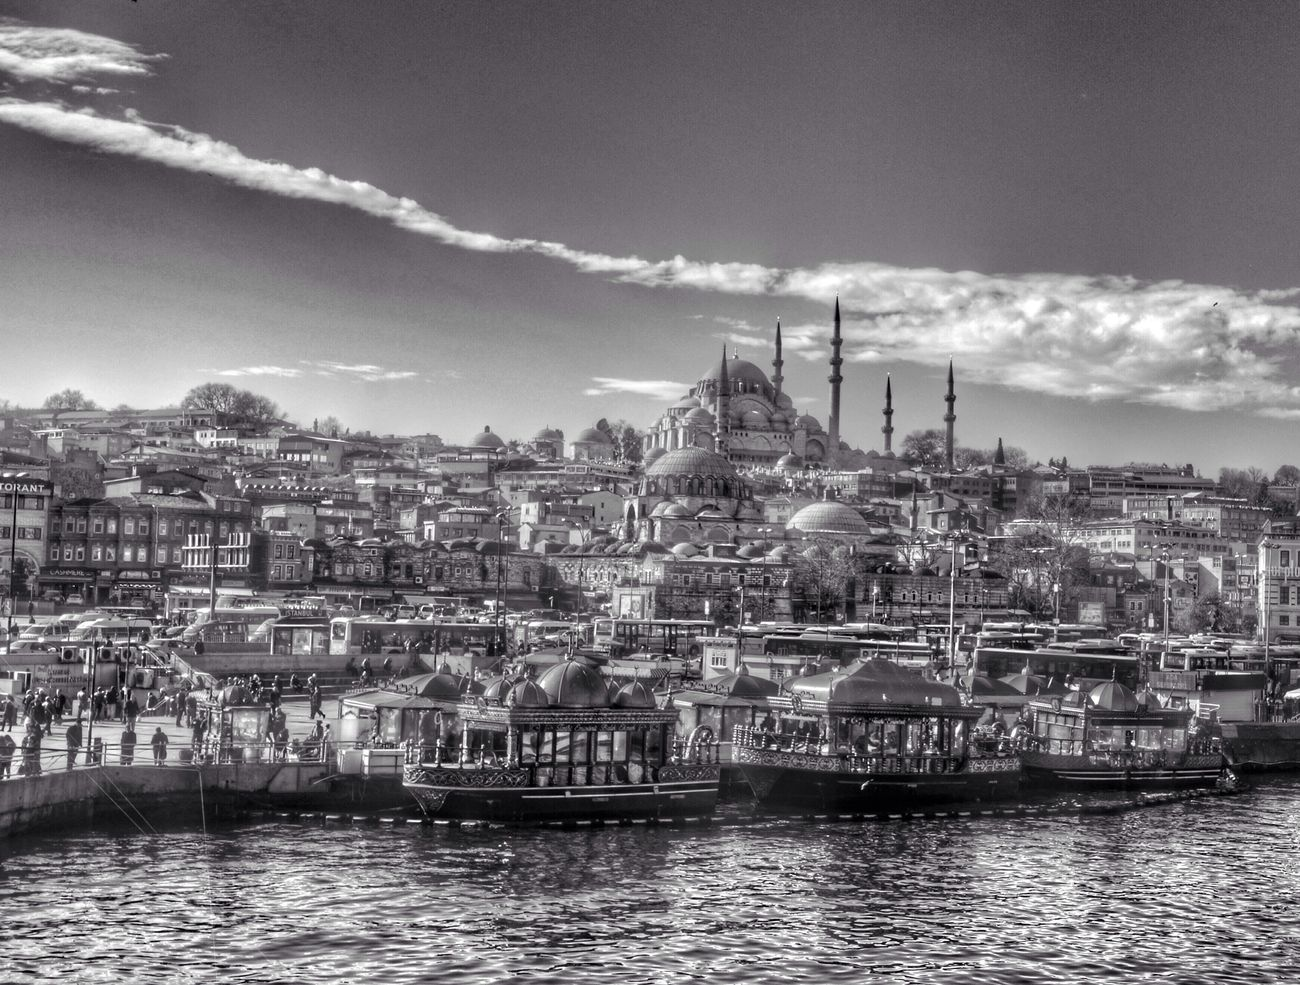 Architecture Bw #bnw #BWcollaboration #istanbul #blackwhite #blackandwhite Bw Streetphotography BW Collection EyeEm Bnw Eye4photography  EyeEm Best Shots - Black + White Bnwphotography EyeEm Best Shots Bnw_captures Bnw_collection Blackandwhite EyeEm Masterclass Black And White Bw_collection Bnw Bnw_life Bnw_society Bnw_planet Bnw_worldwide Bnw_city Bnw Photography Bnw_magazine Place Of Worship